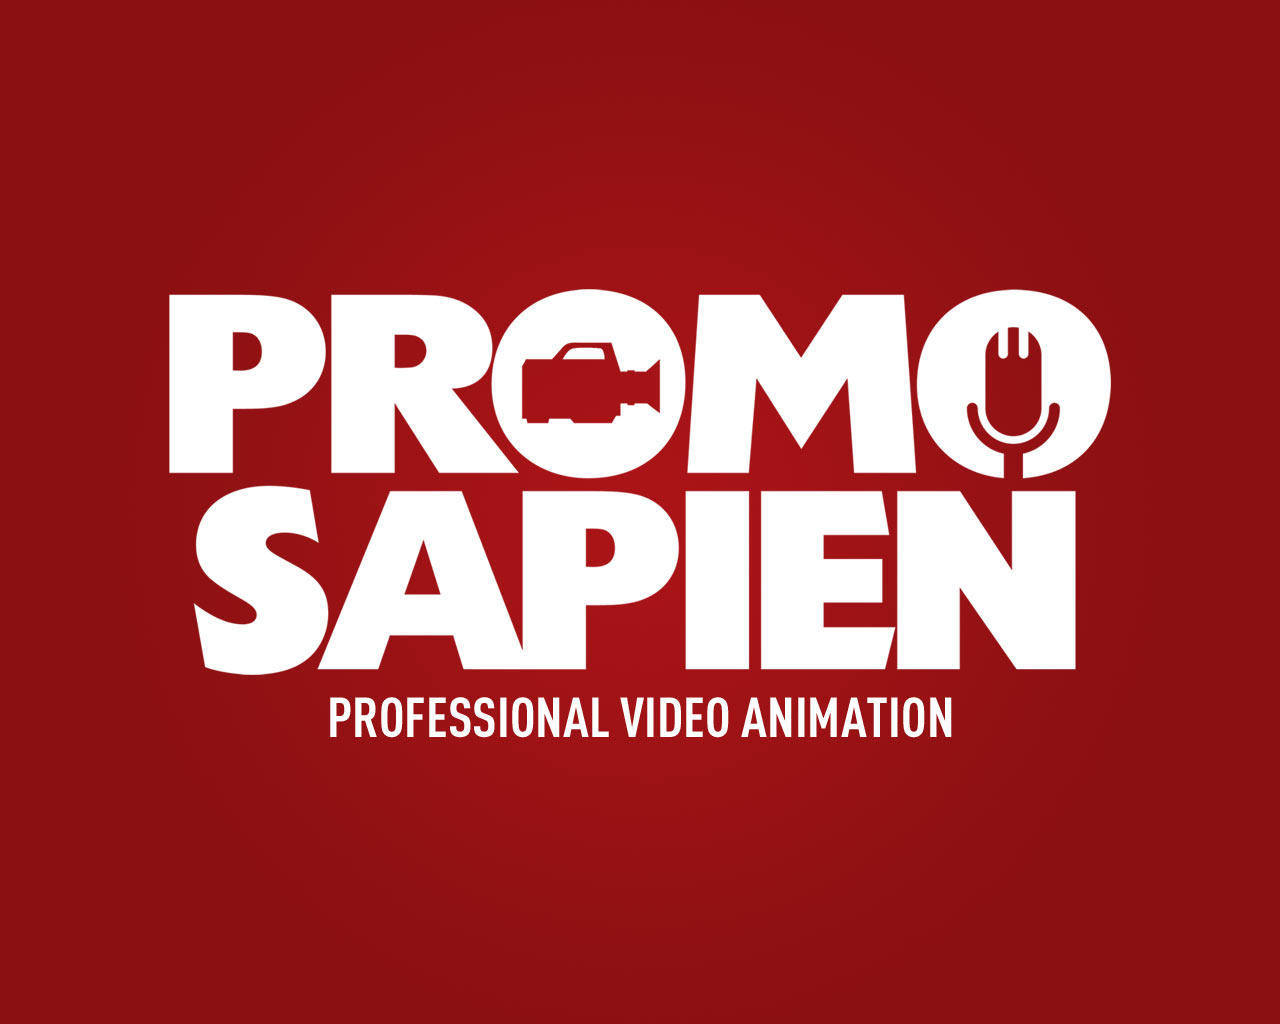 Professional Video Animation by promosapien - 74598